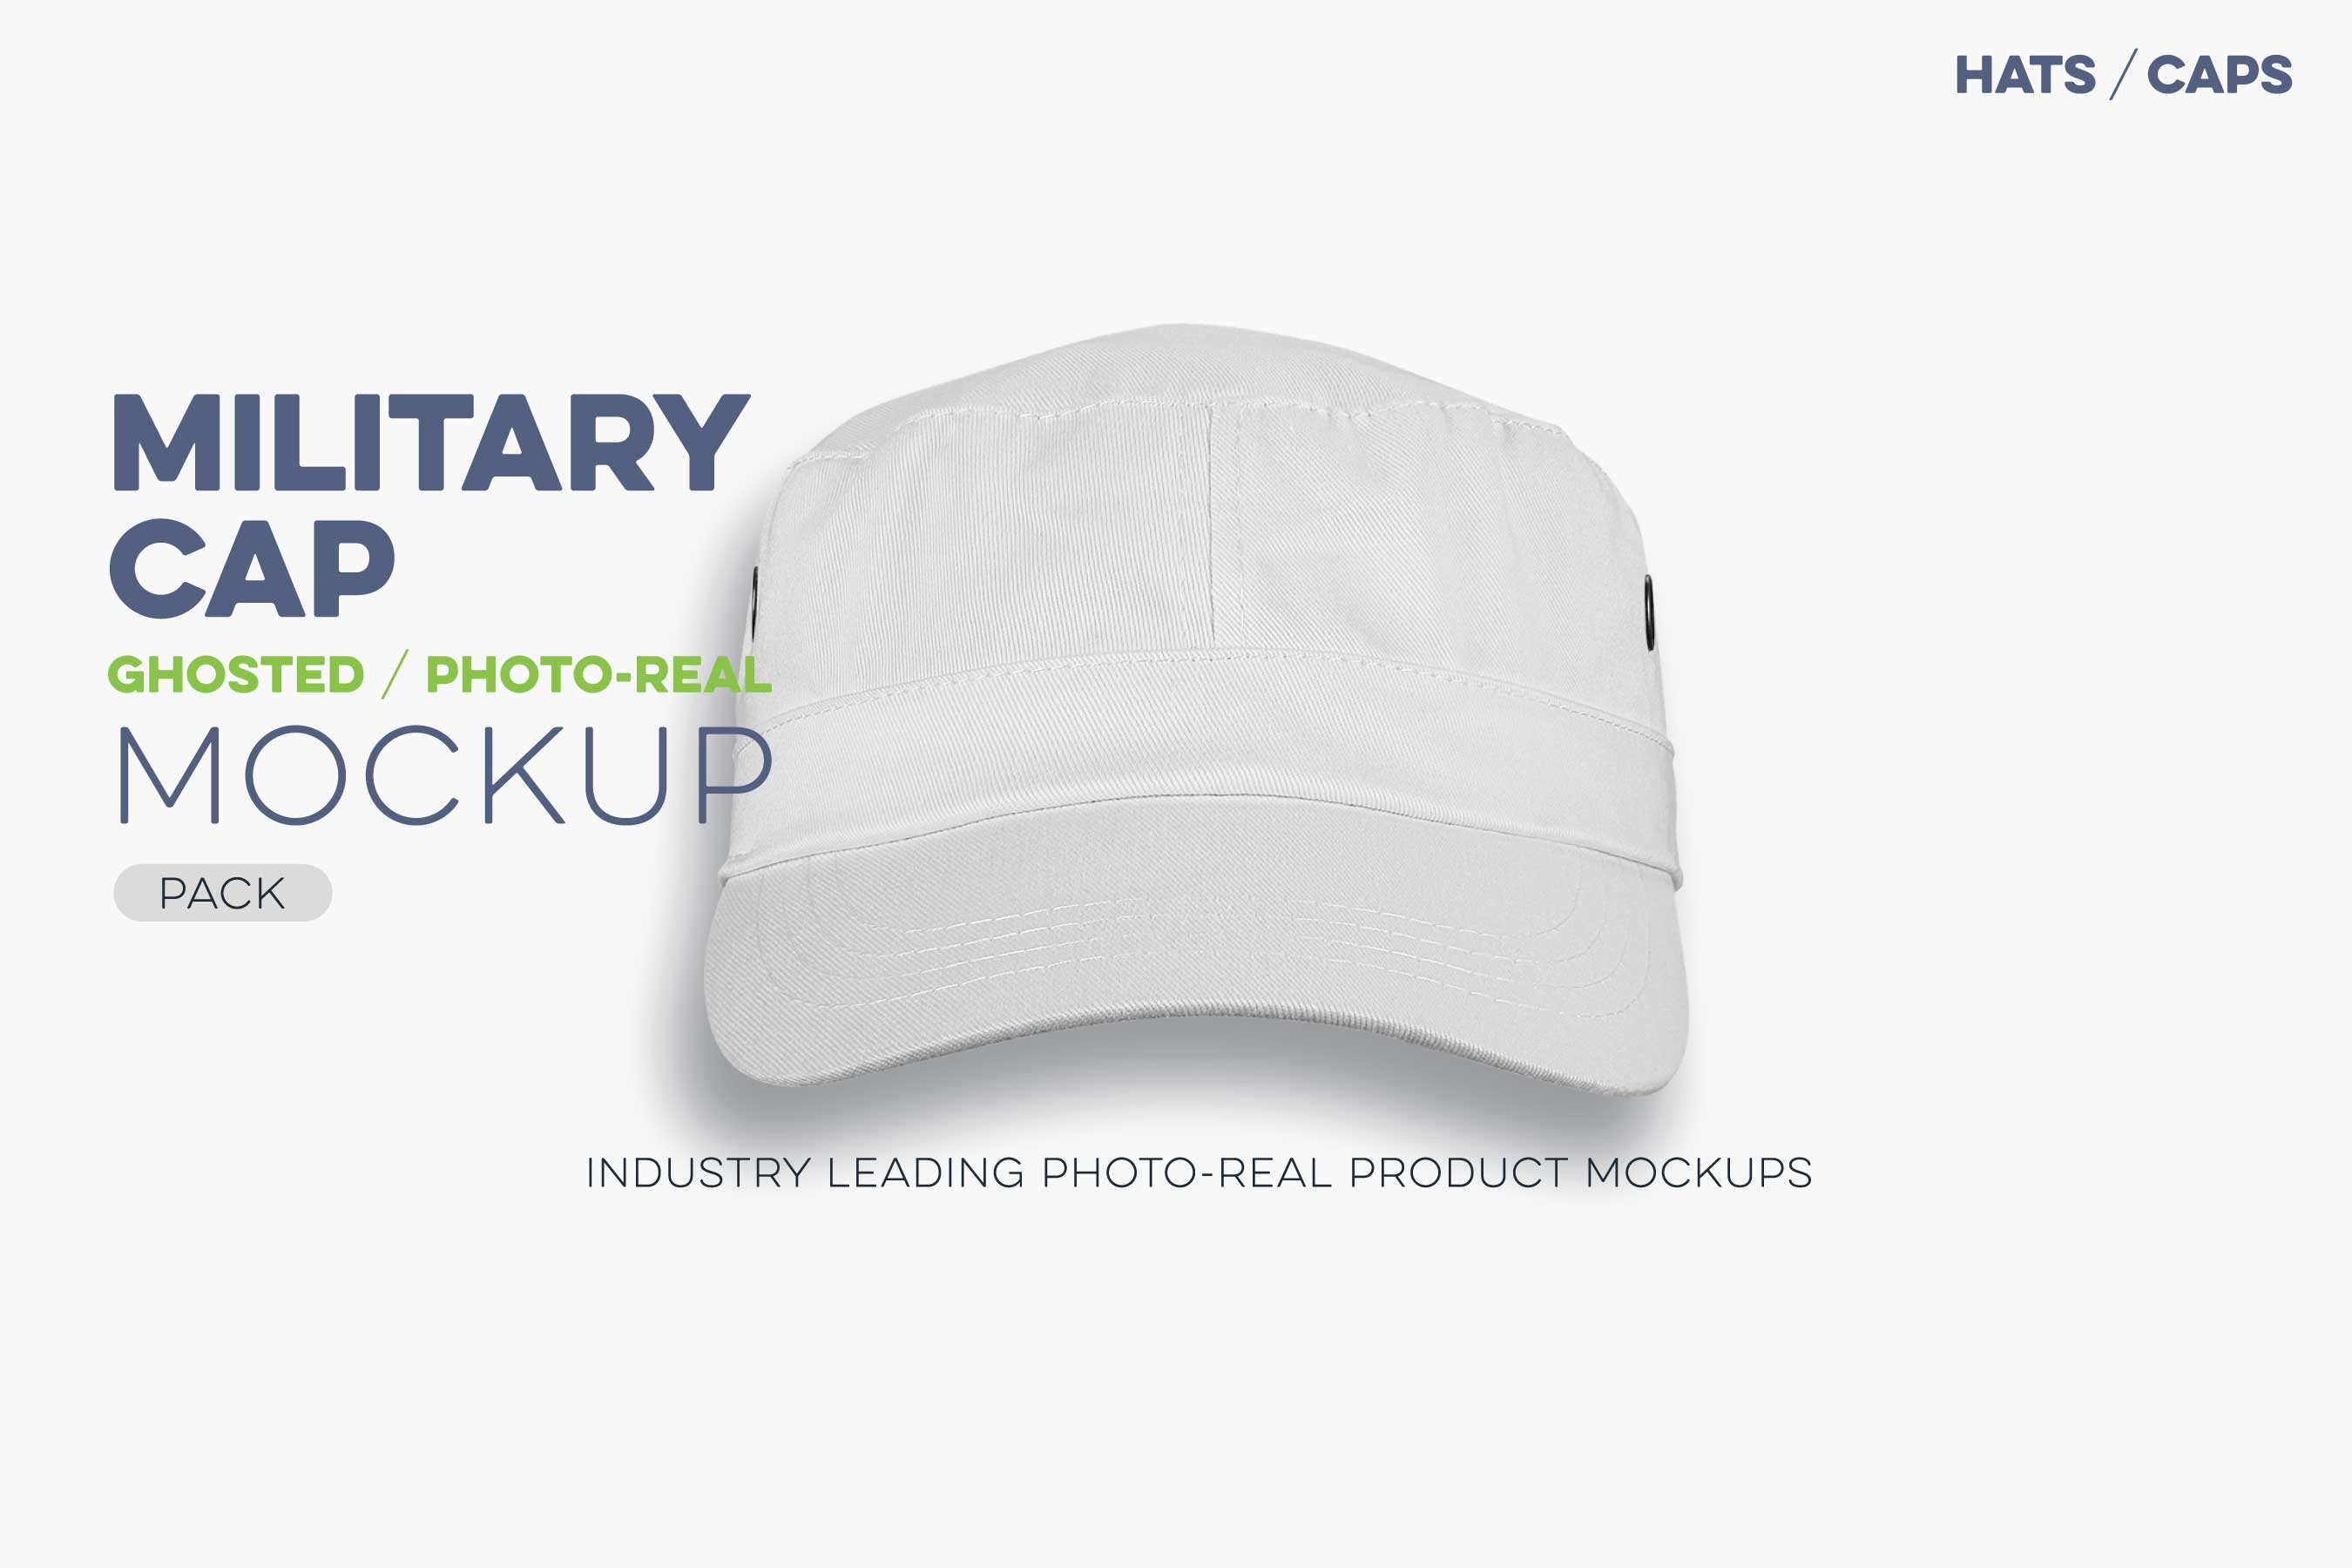 ghosted military cap mockup